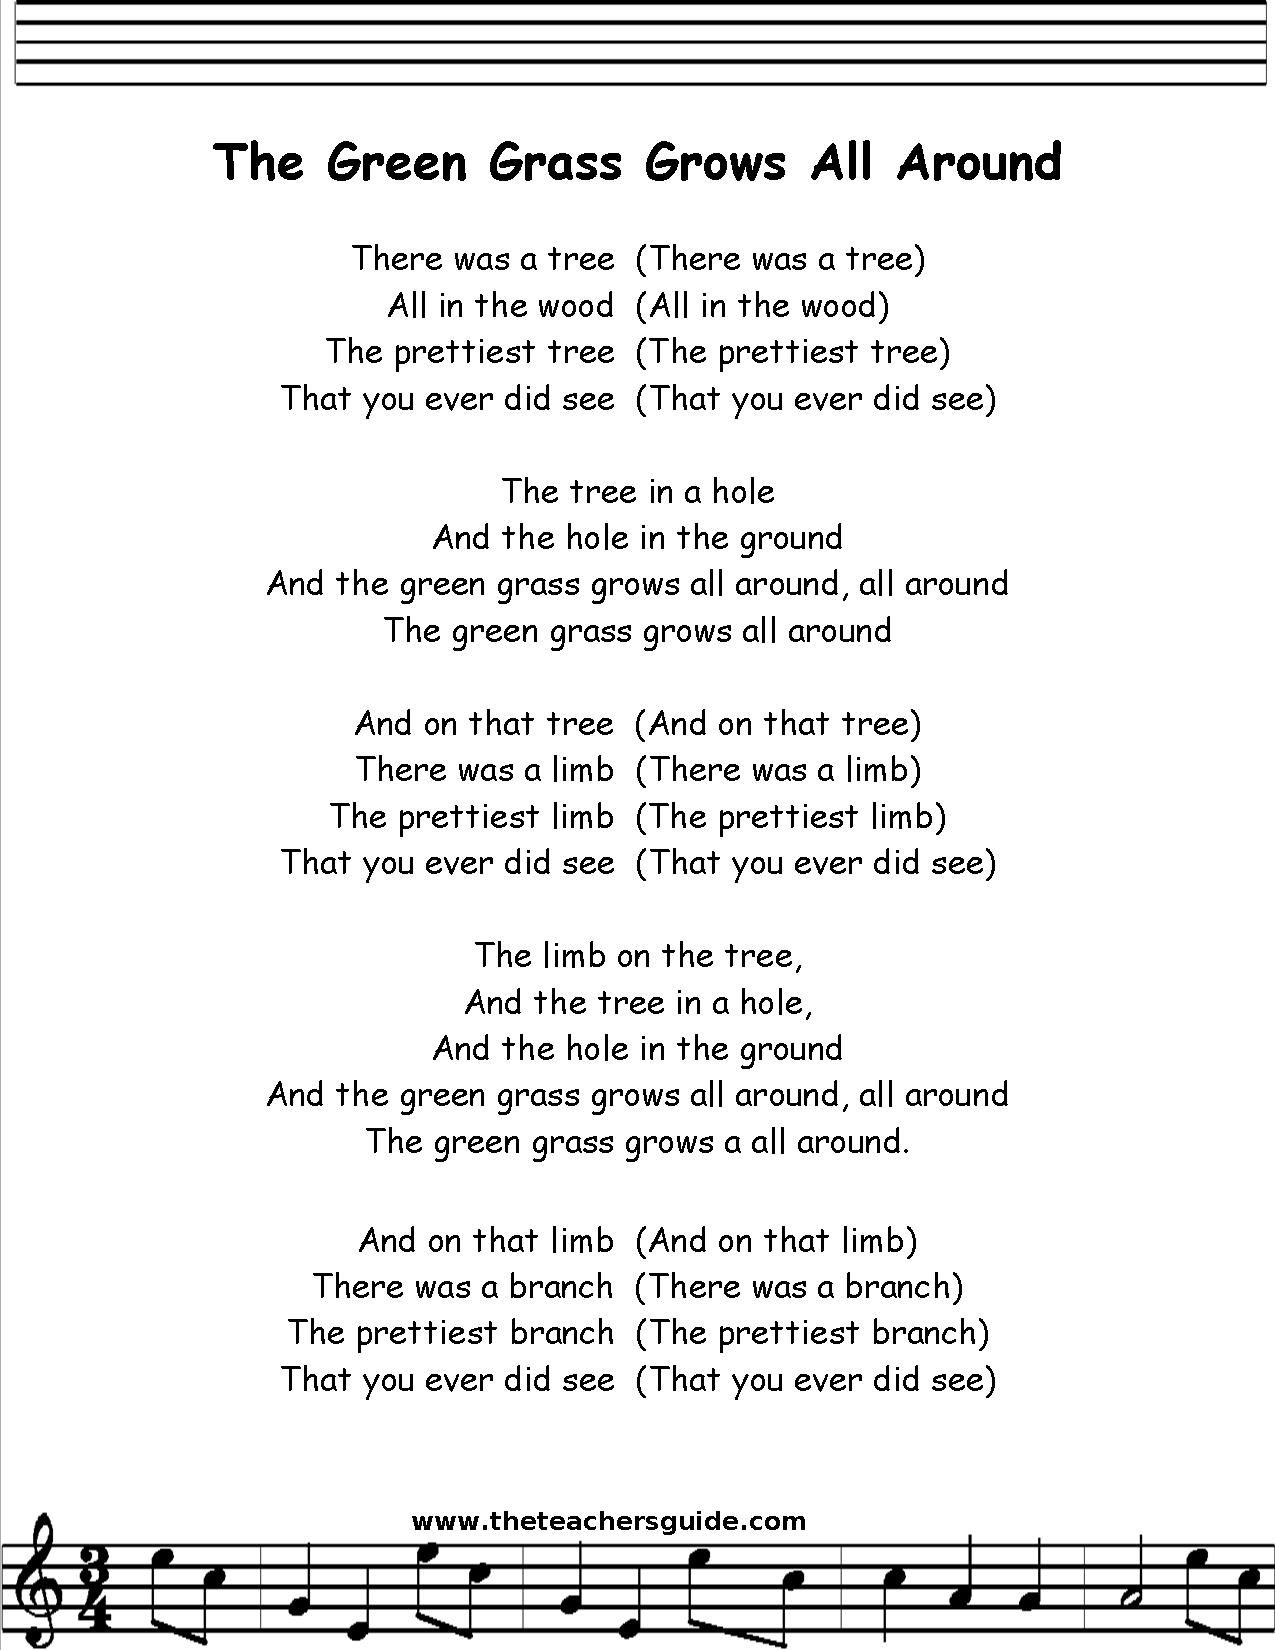 Green Gr Grows All Around Lyrics Printout